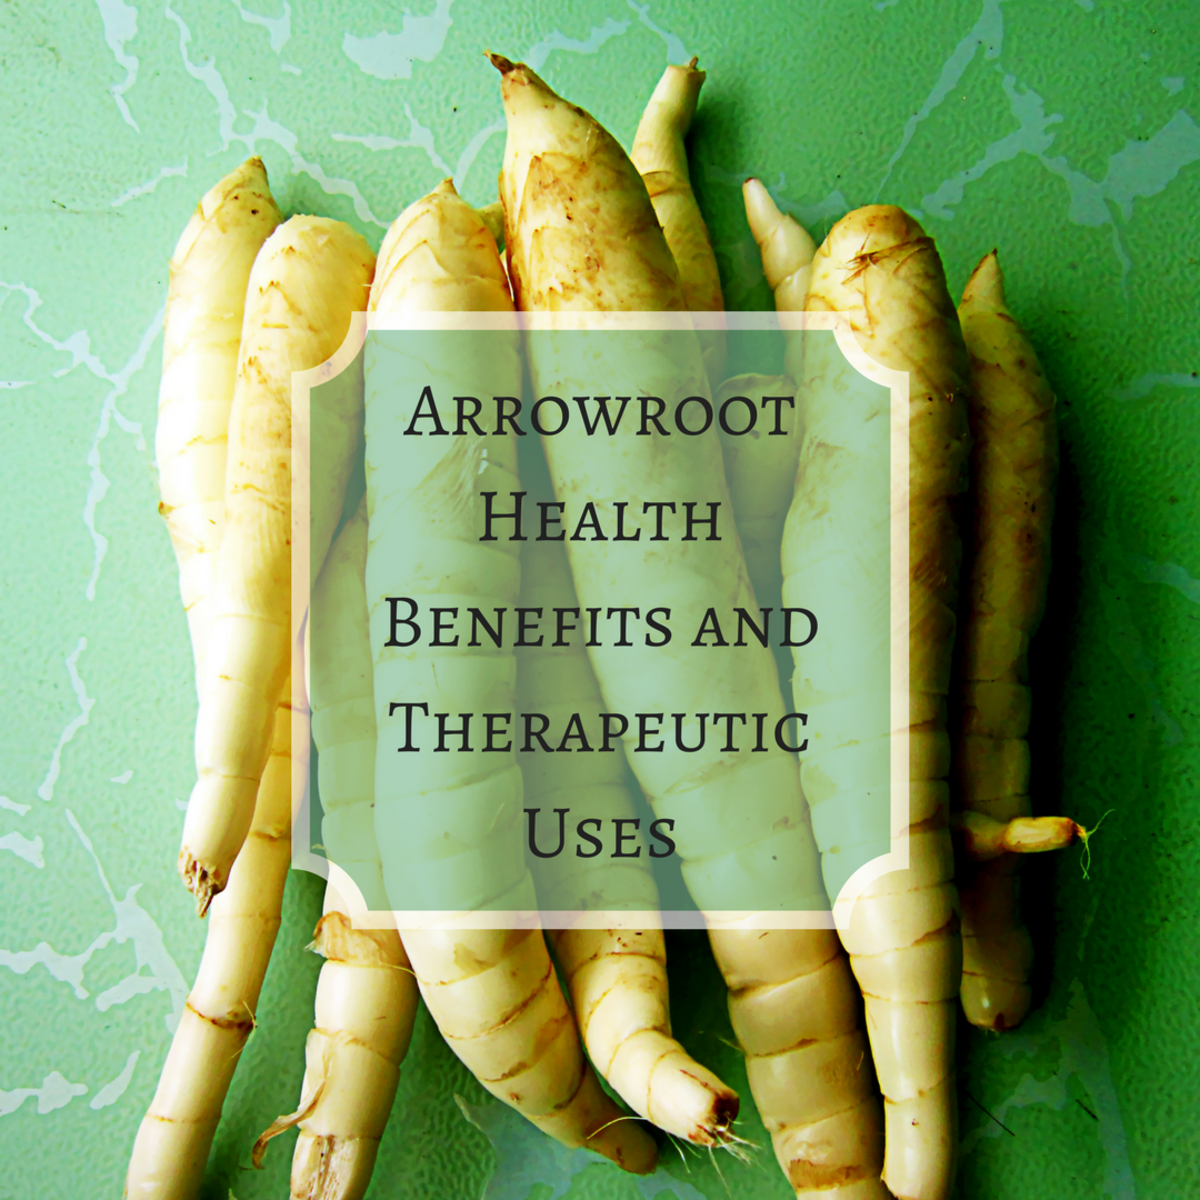 Arrowroot Health Benefits and Therapeutic Uses